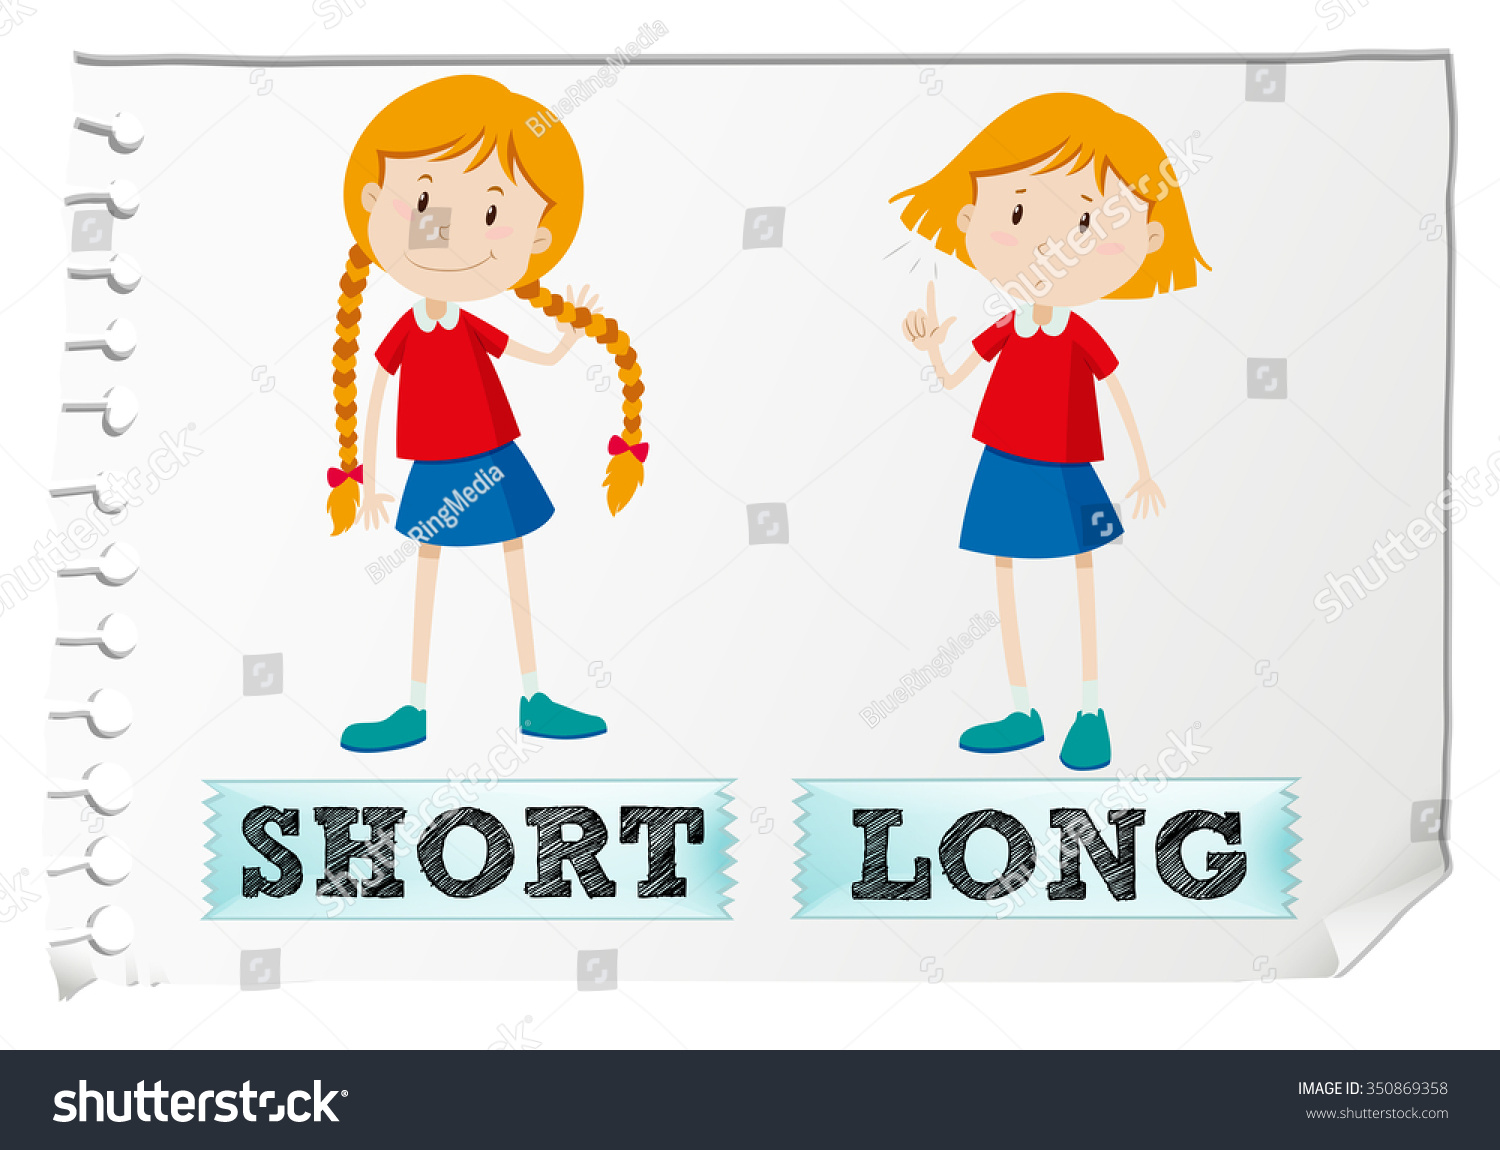 Opposite Adjectives Short Long Illustration Stock Vector